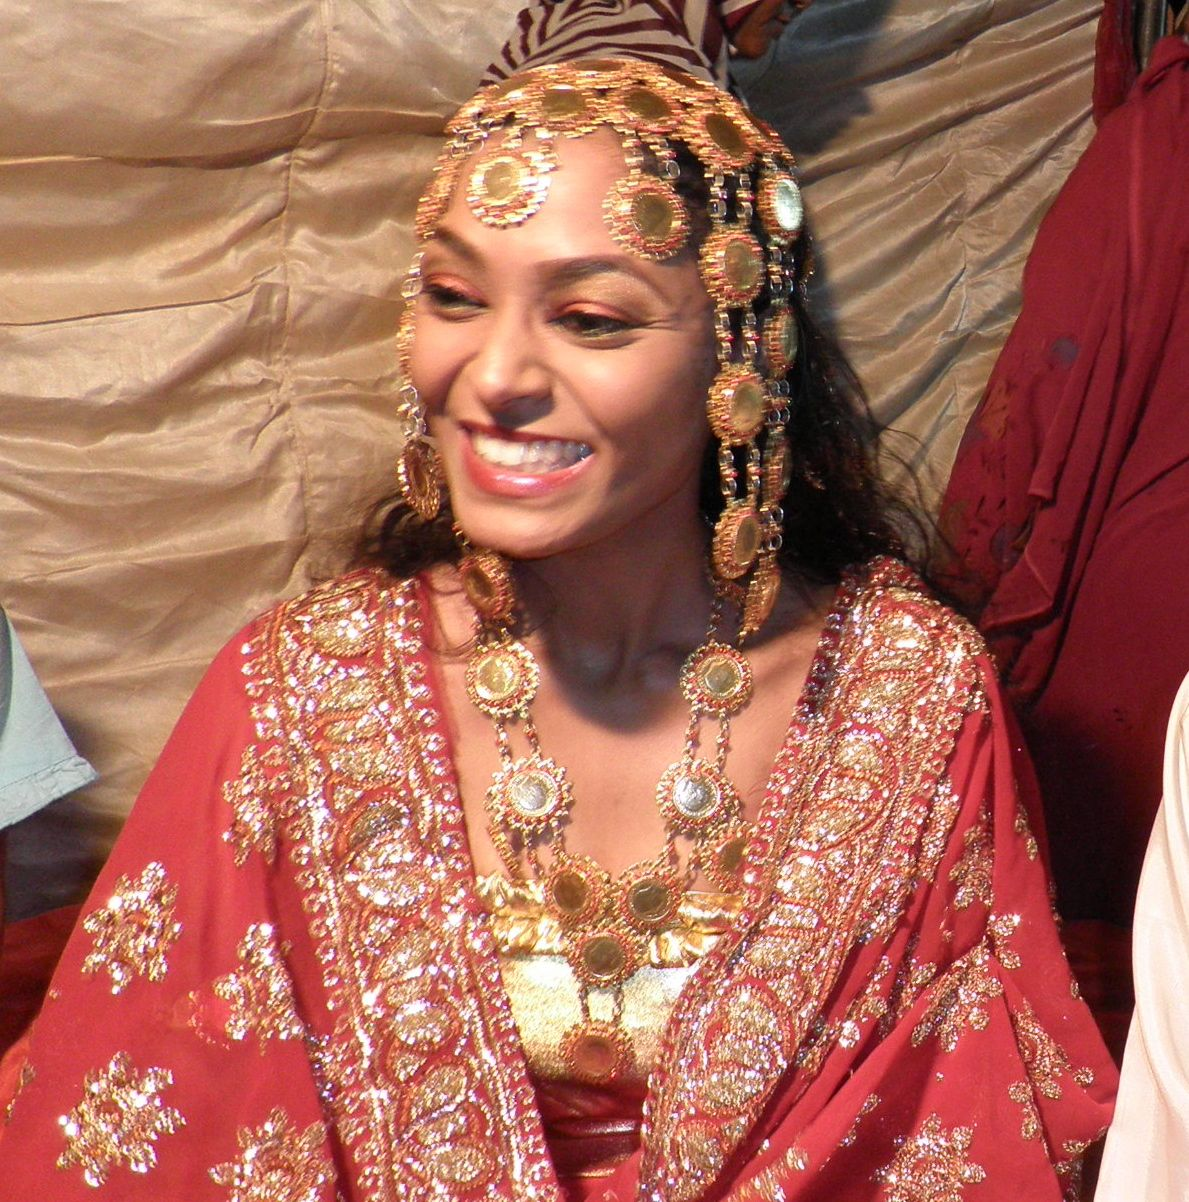 Nubian Bride Dressed In The Traditional Red And Gold